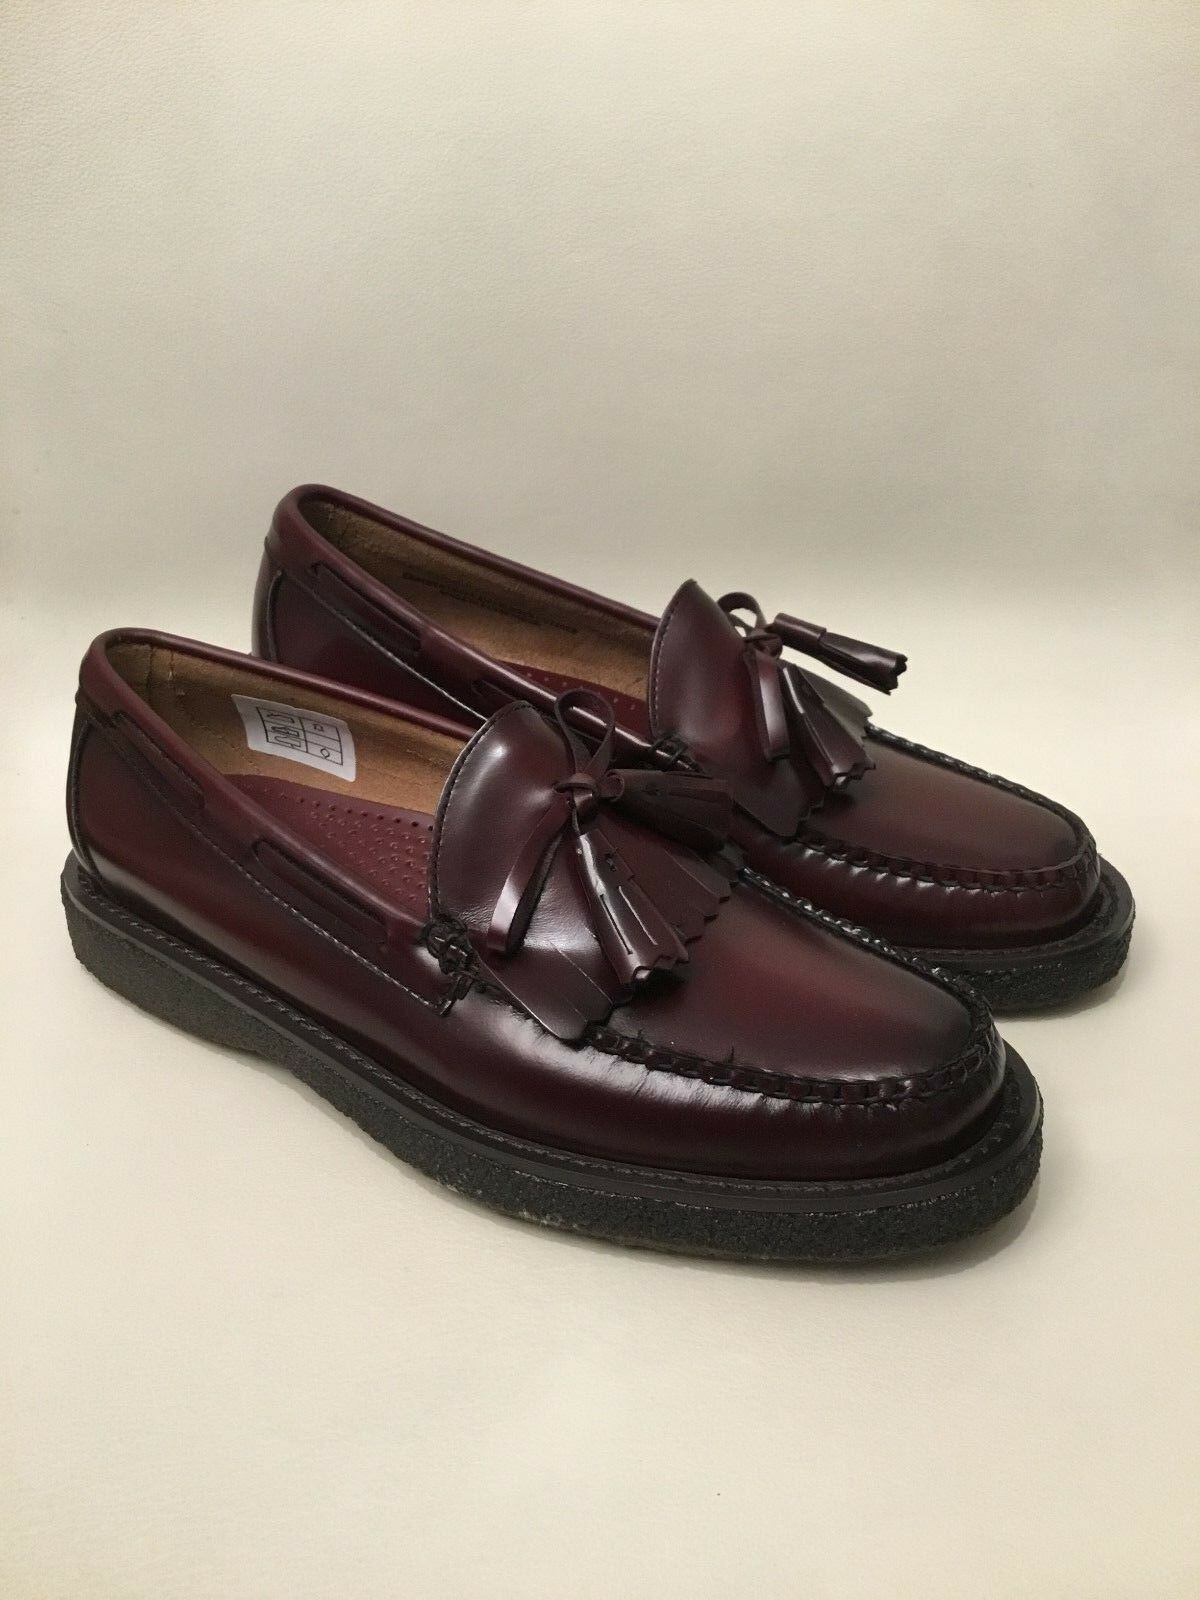 reputable site 003d6 ba778 G.H. BASS       CO WEEJUNS LAYTON KILTIE TASSELED LOAFERS SIZES FROM to 12  e3d4b0